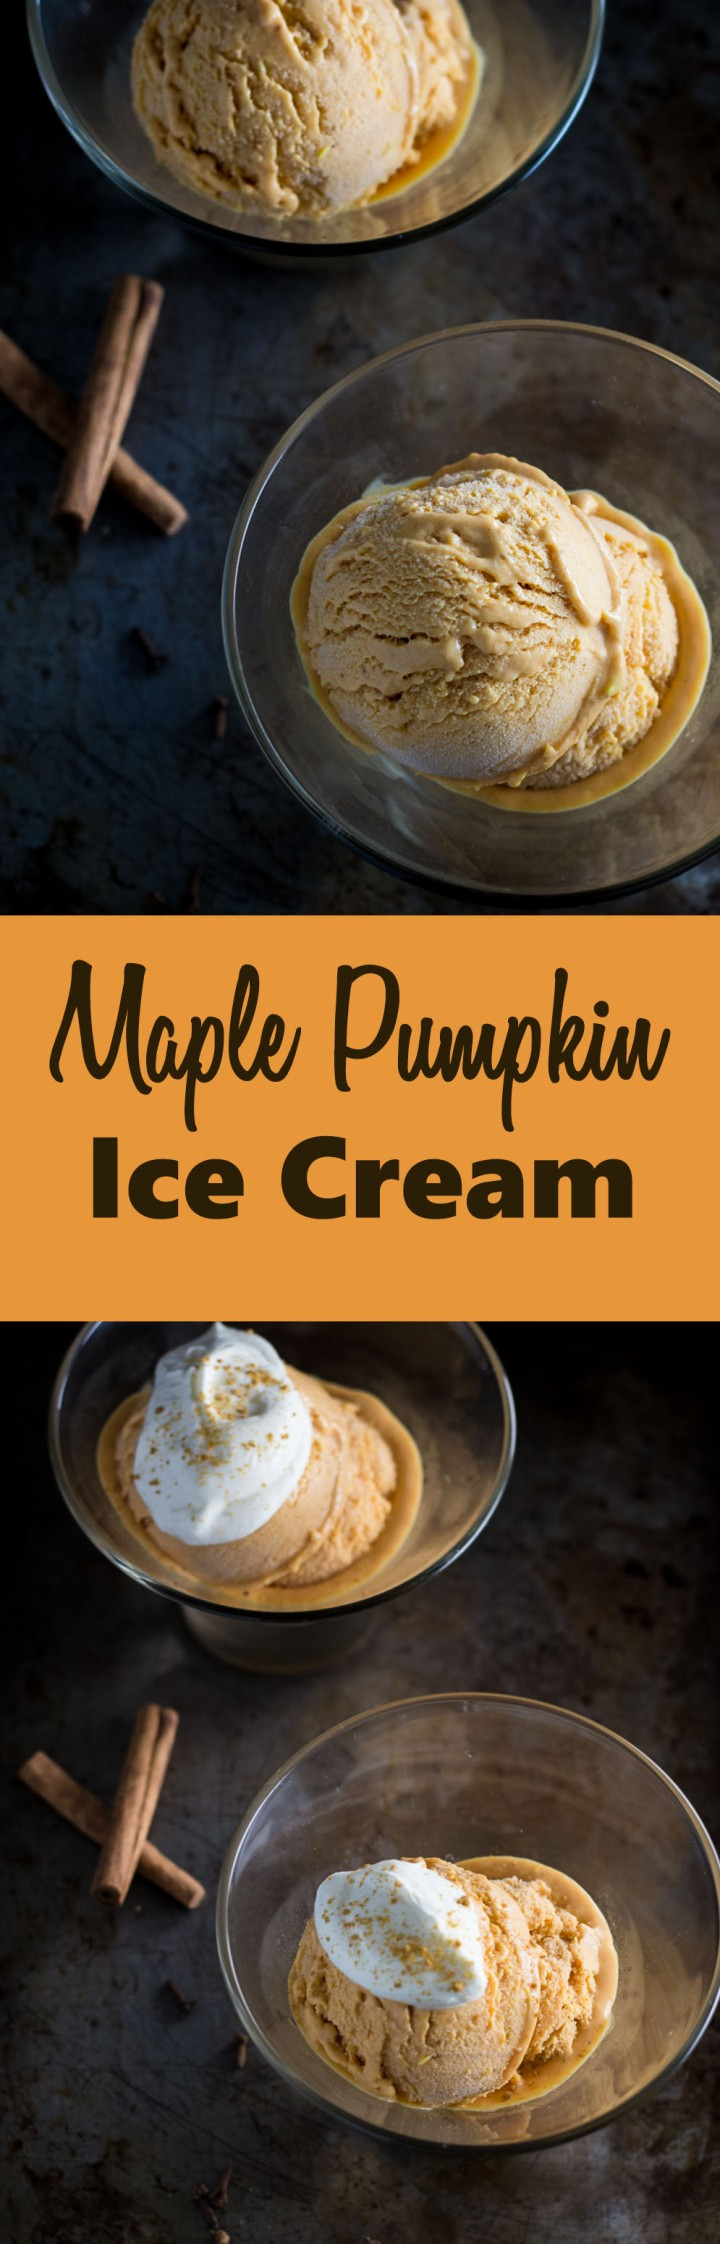 Maple Pumpkin Ice Cream #pumpkin #icecream #dessert #fall #thanksgiving